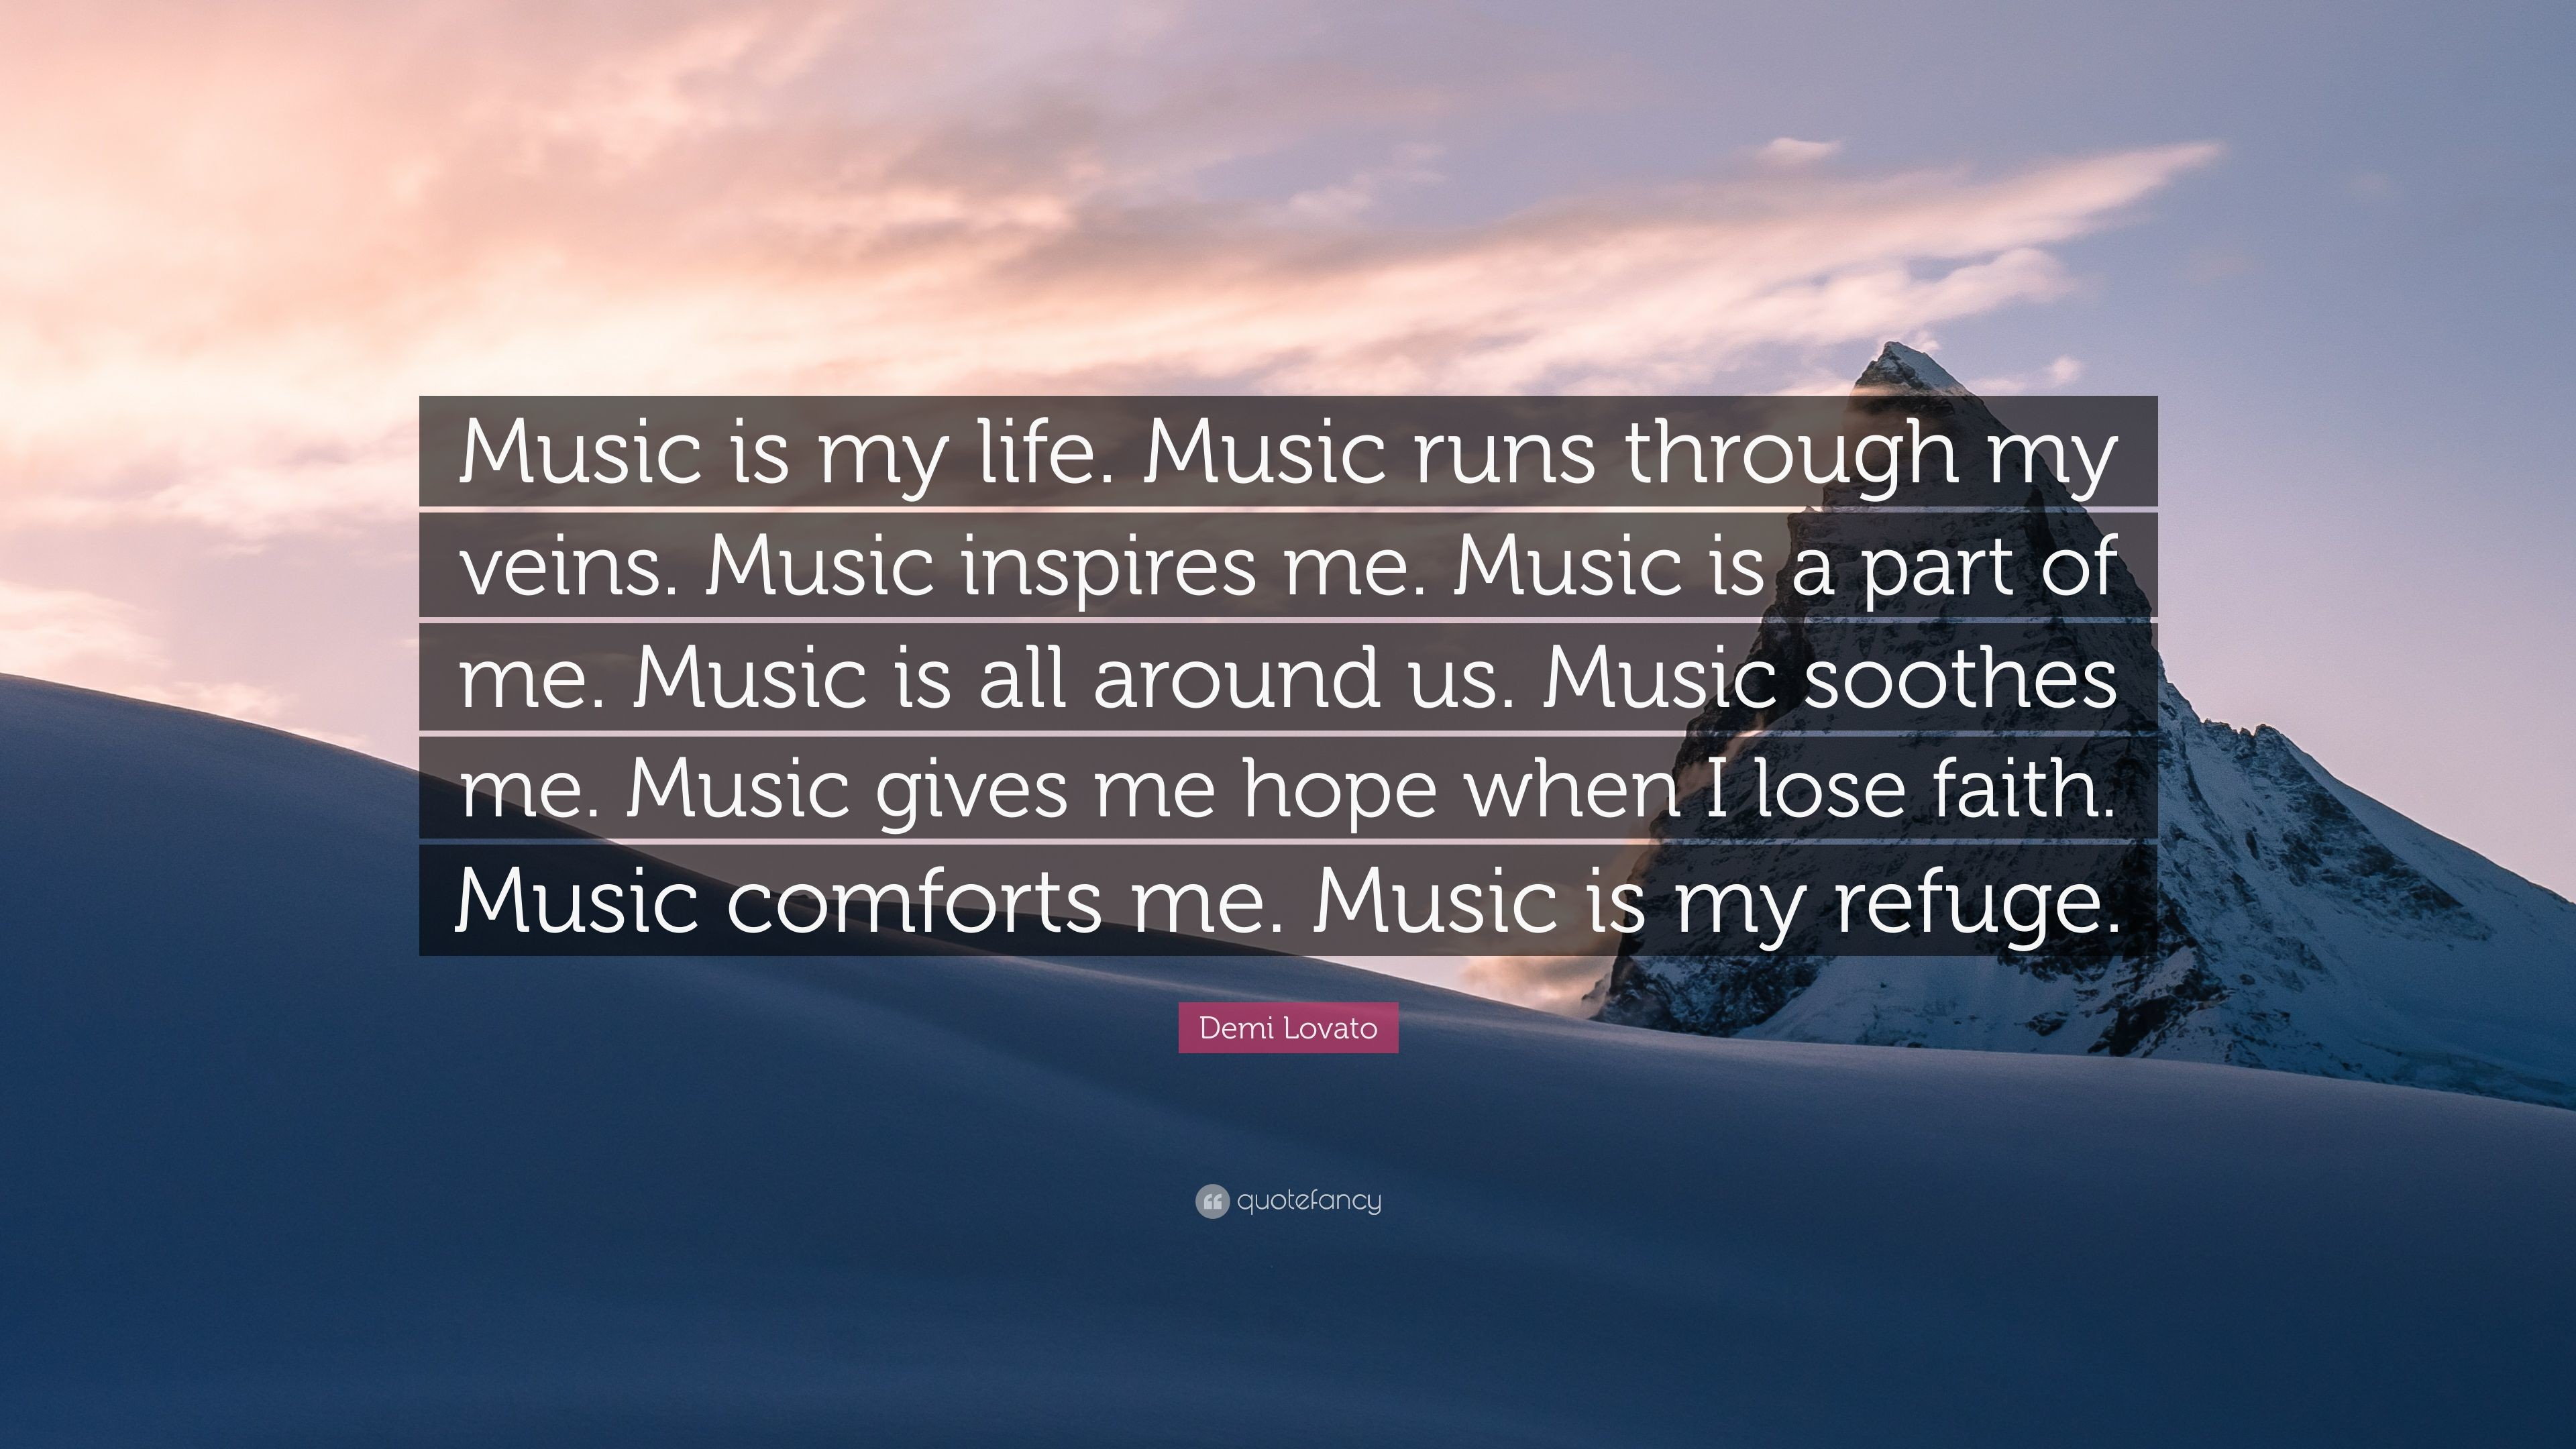 Iphone Wallpaper Music Quotes 58725 Loadtve